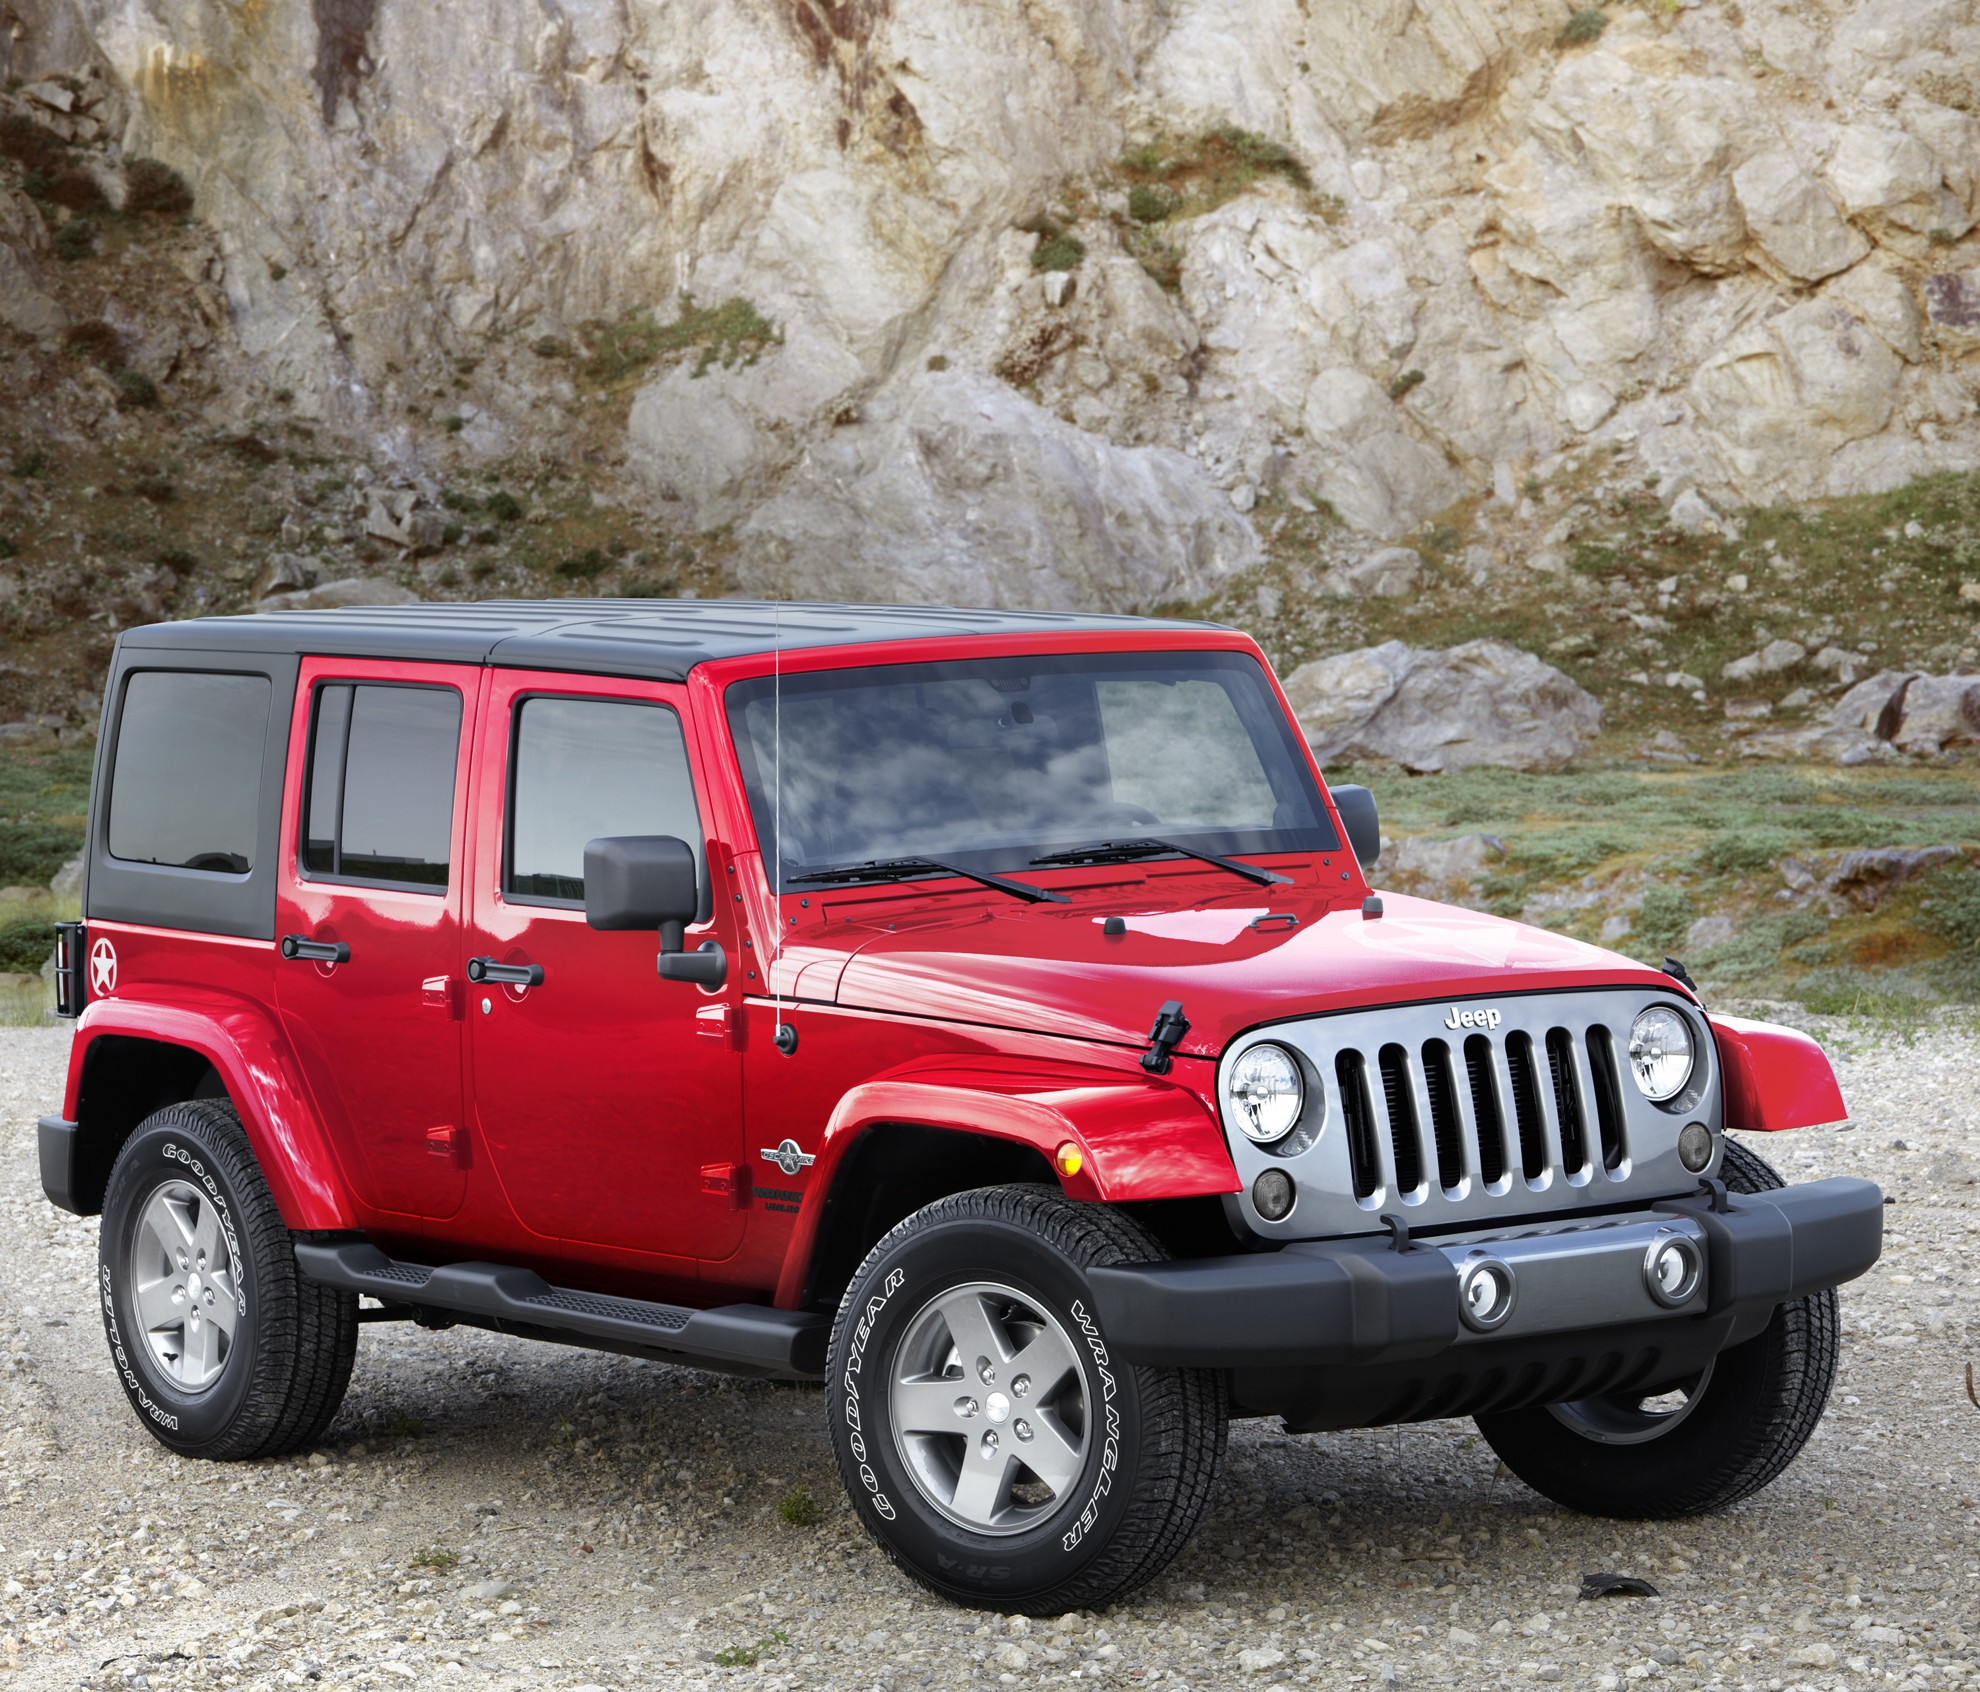 How Much Does A Jeep Wrangler 2014 Cost In South Africa?